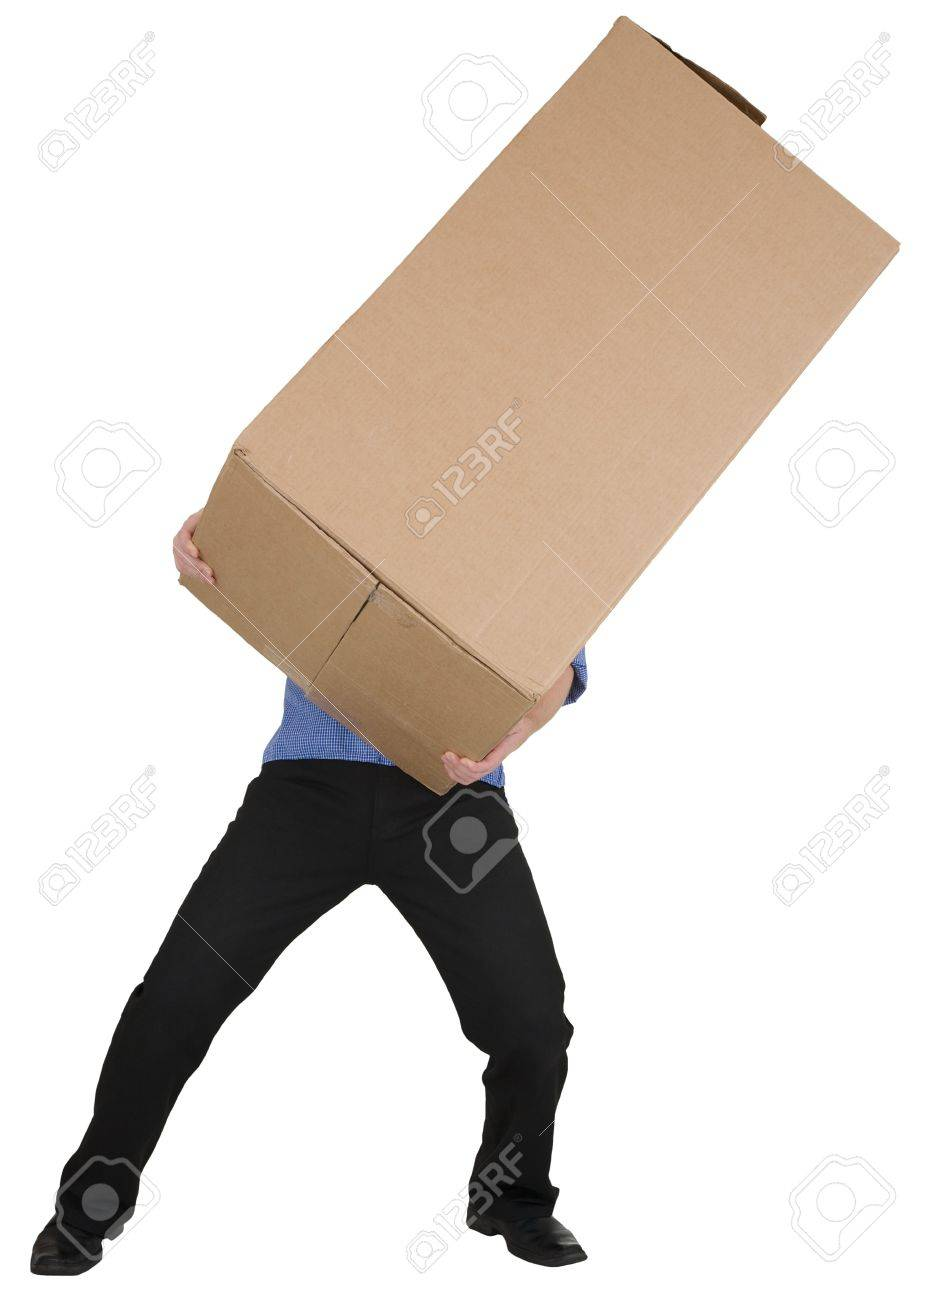 Man Holding On Hands Big Cardboard Box Stock Photo, Picture And ...